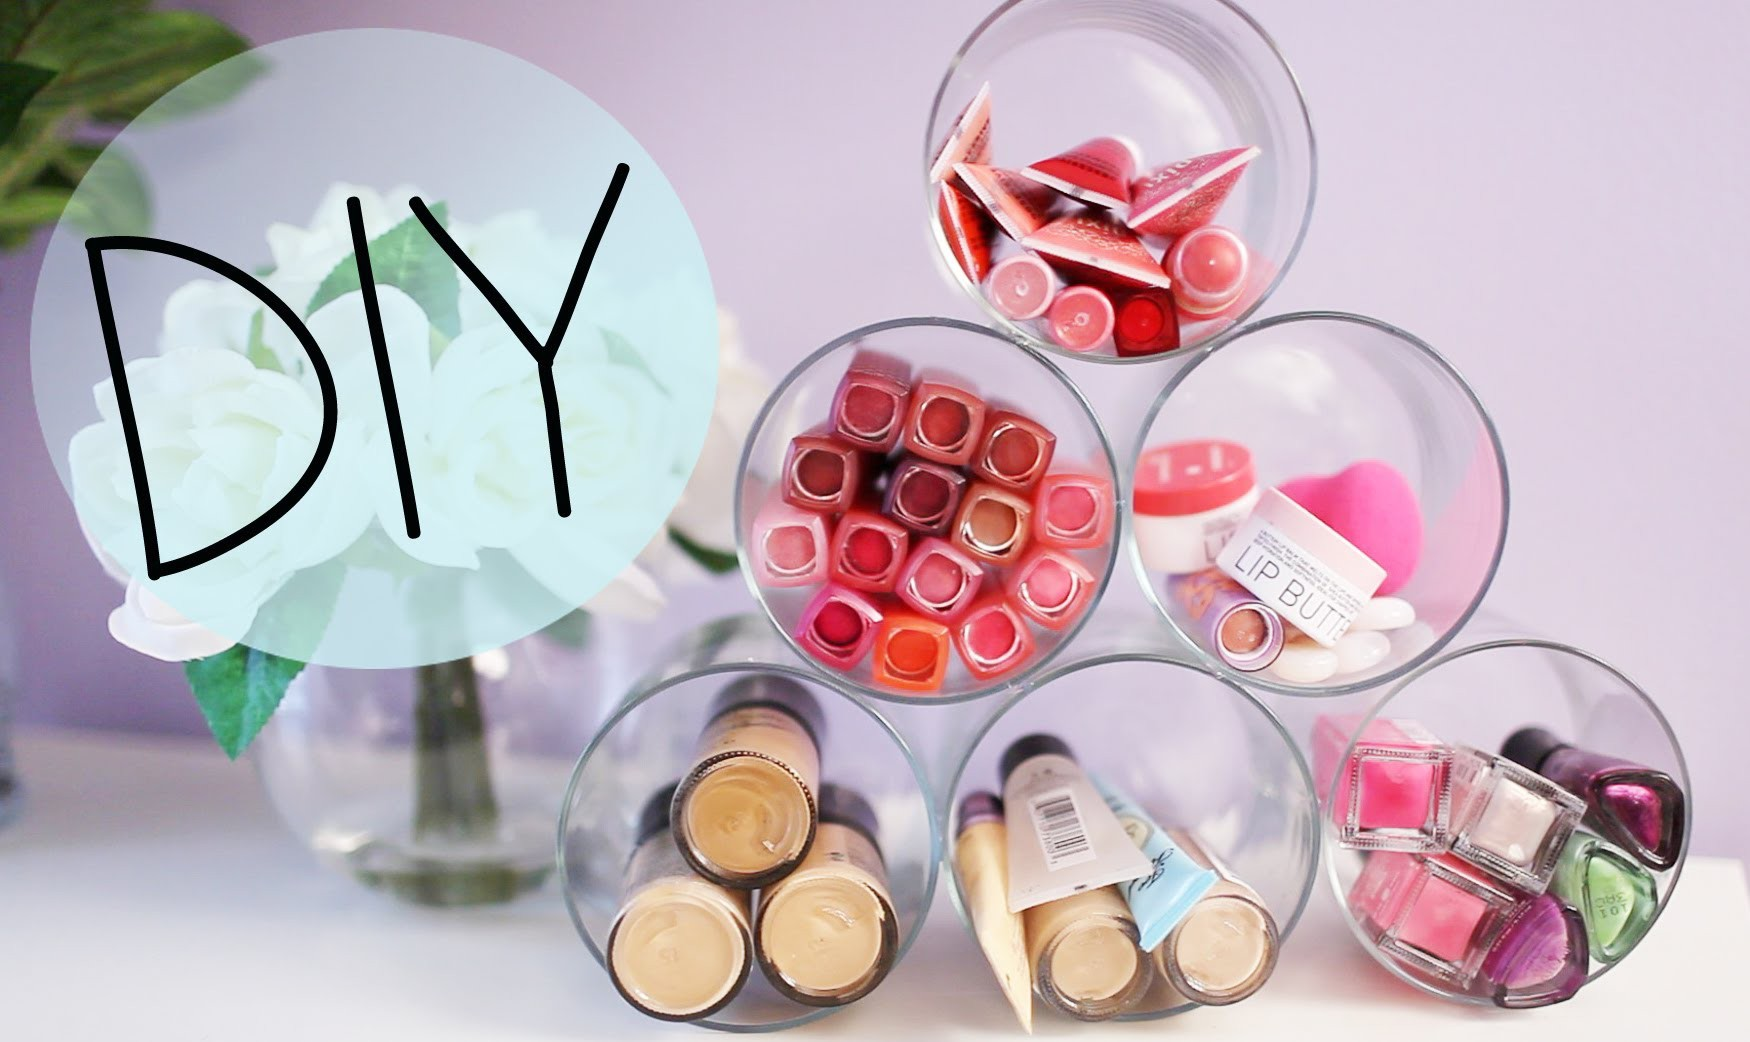 DIY Candle Jar Organizer & Ideas to Upcycle Bath & Body Works Jars {Makeup organizer}